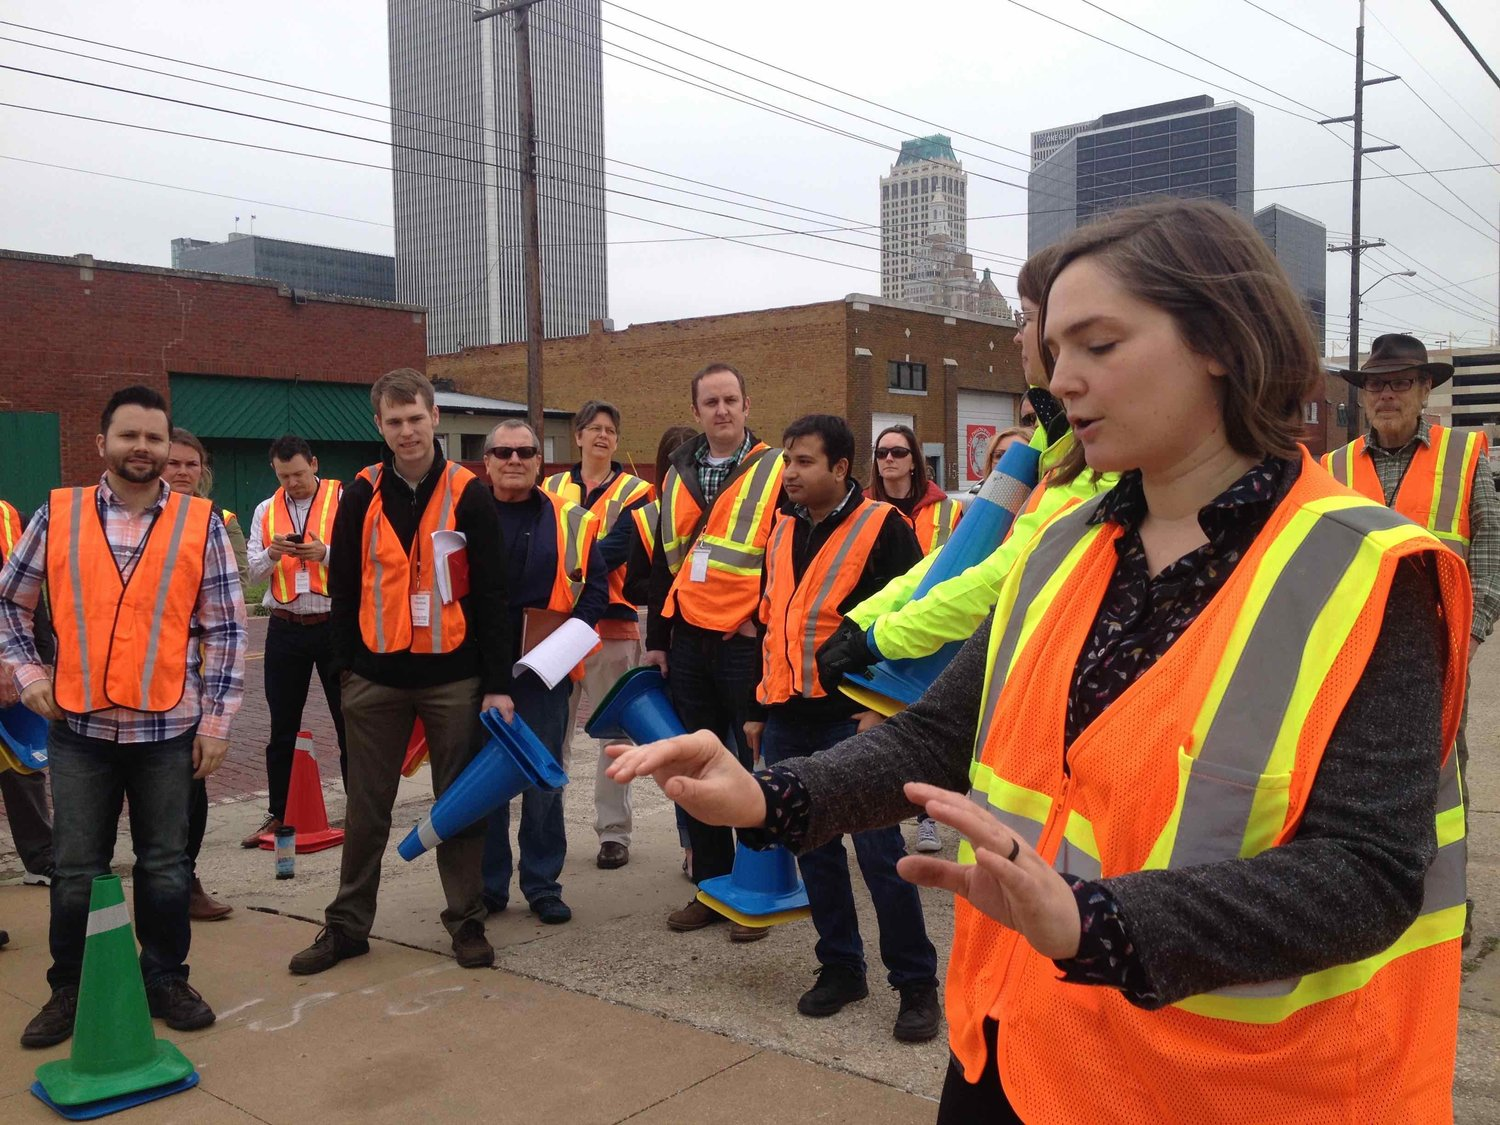 Strong Towns member Marielle Brown led participants in a hands-on traffic calming workshop at our transportation summit in Tulsa, OK in 2017.